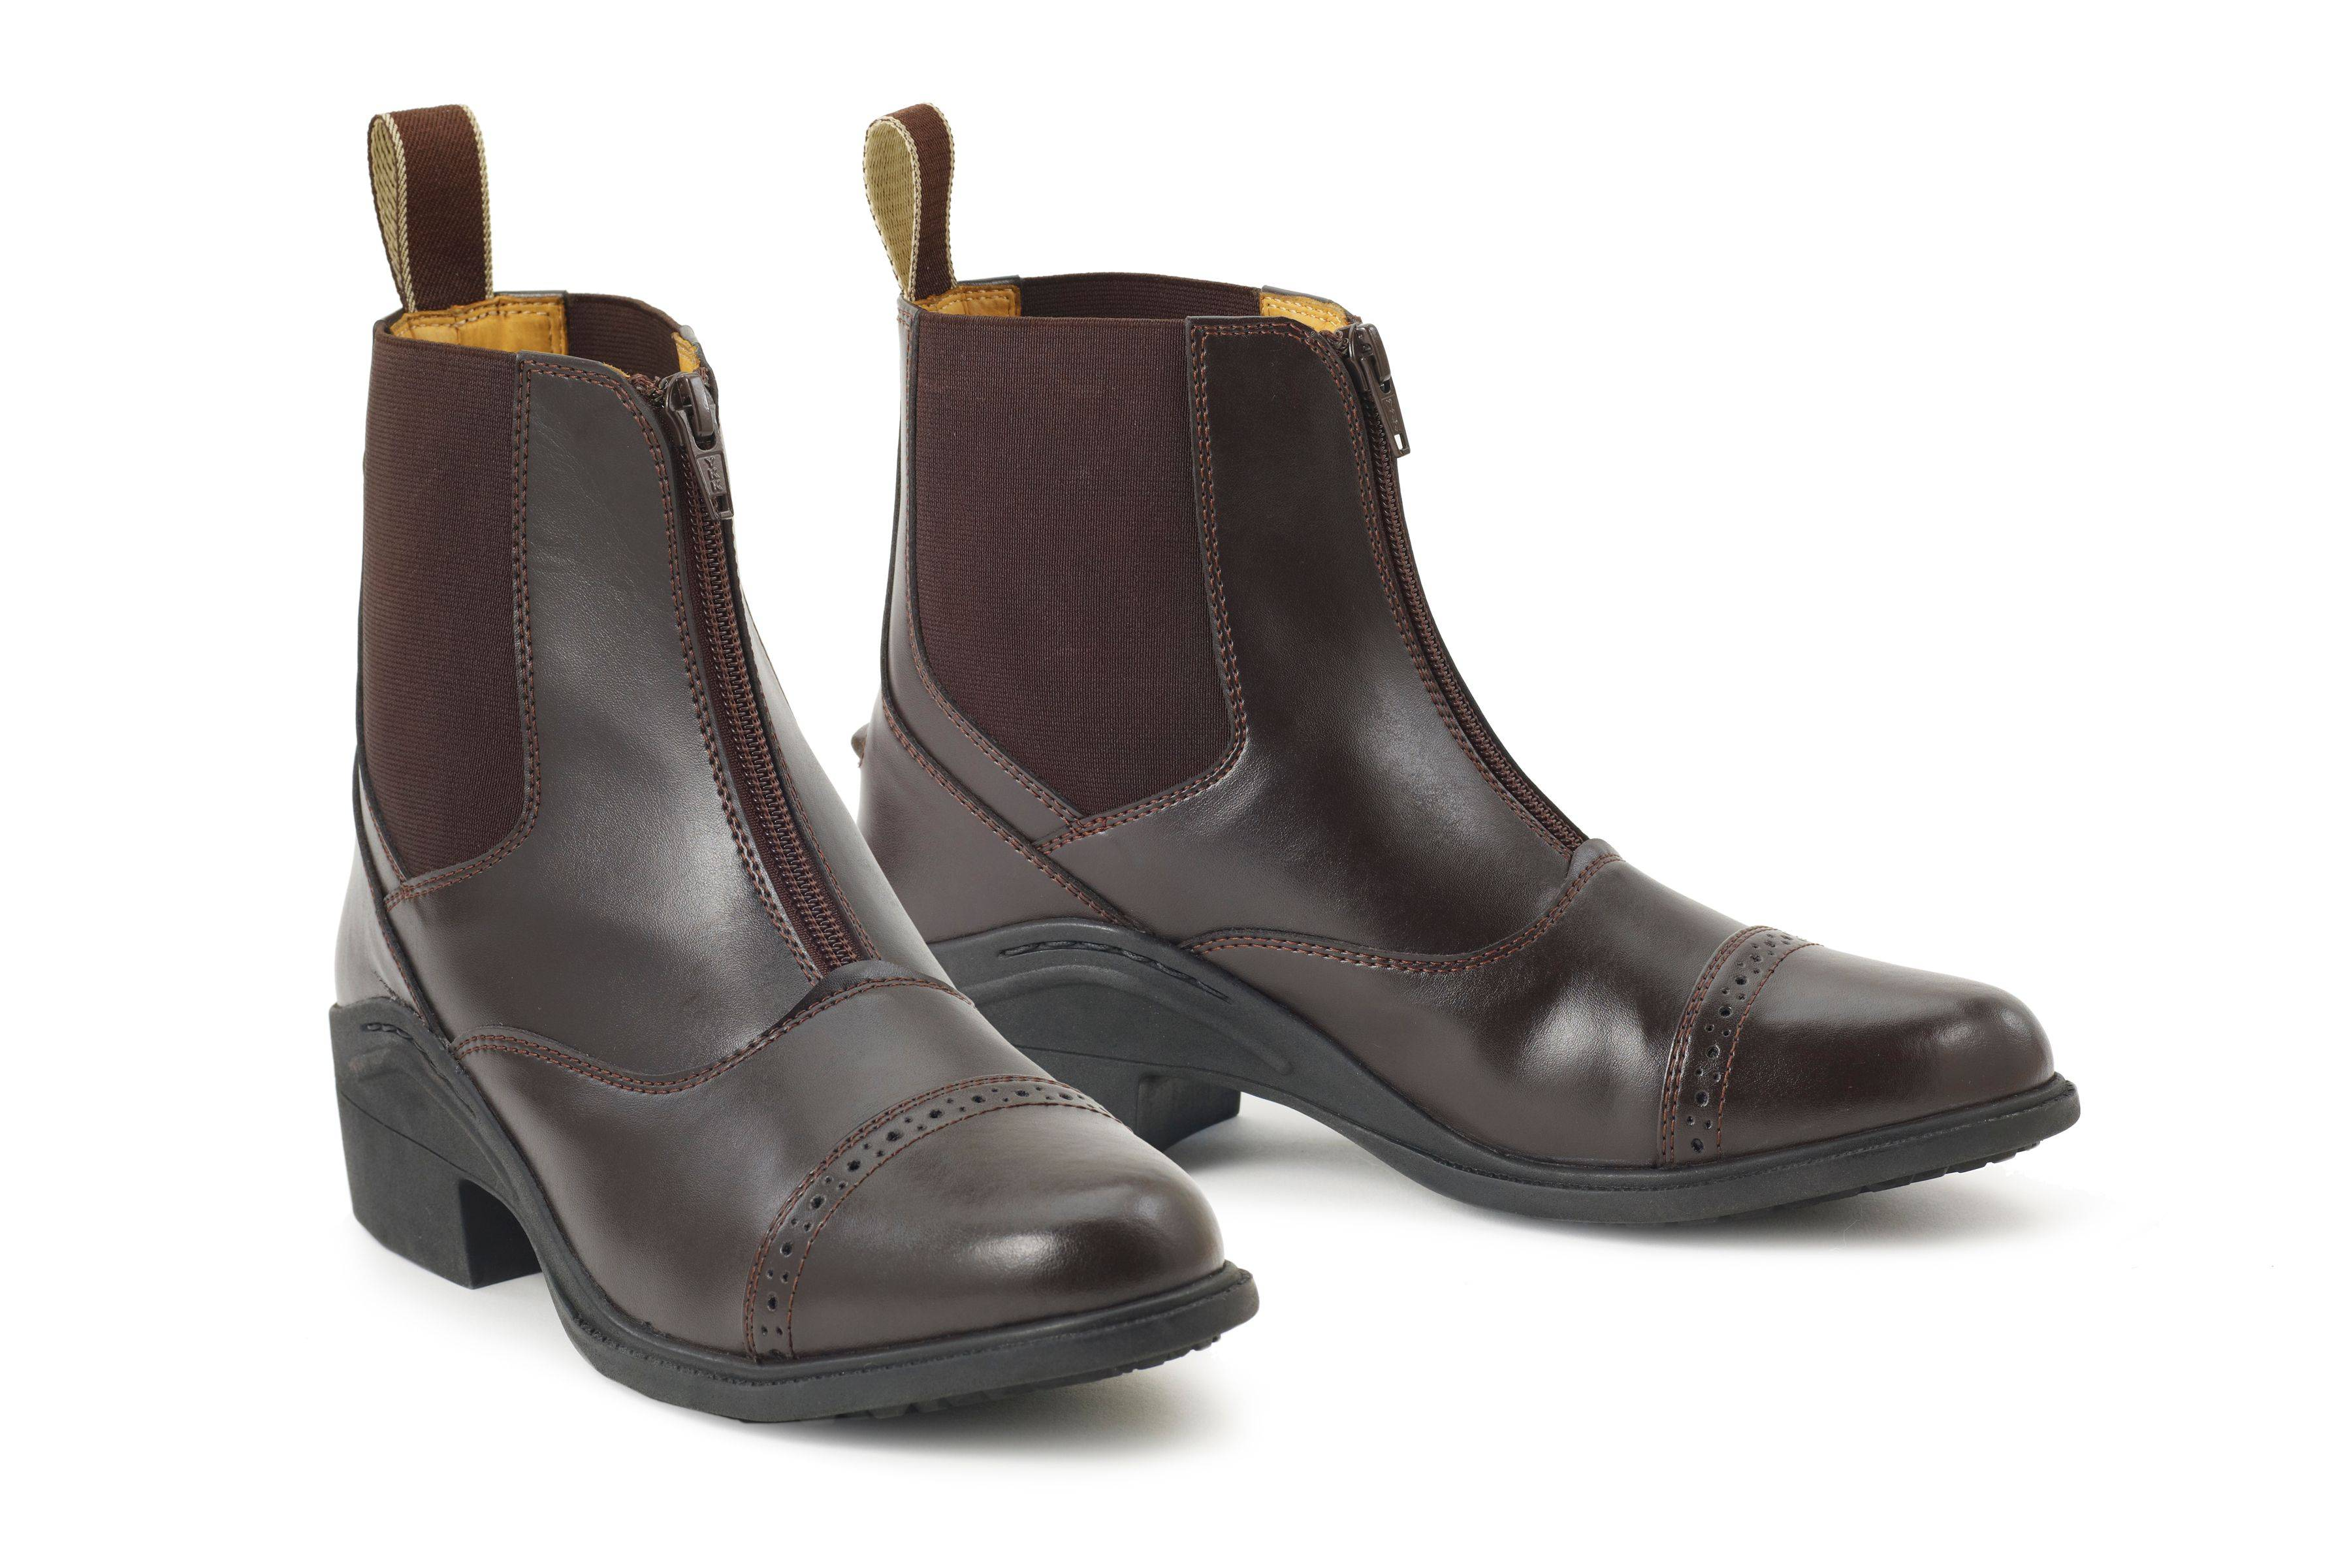 Ovation Synergy Front Zip Paddock Boots - Kids